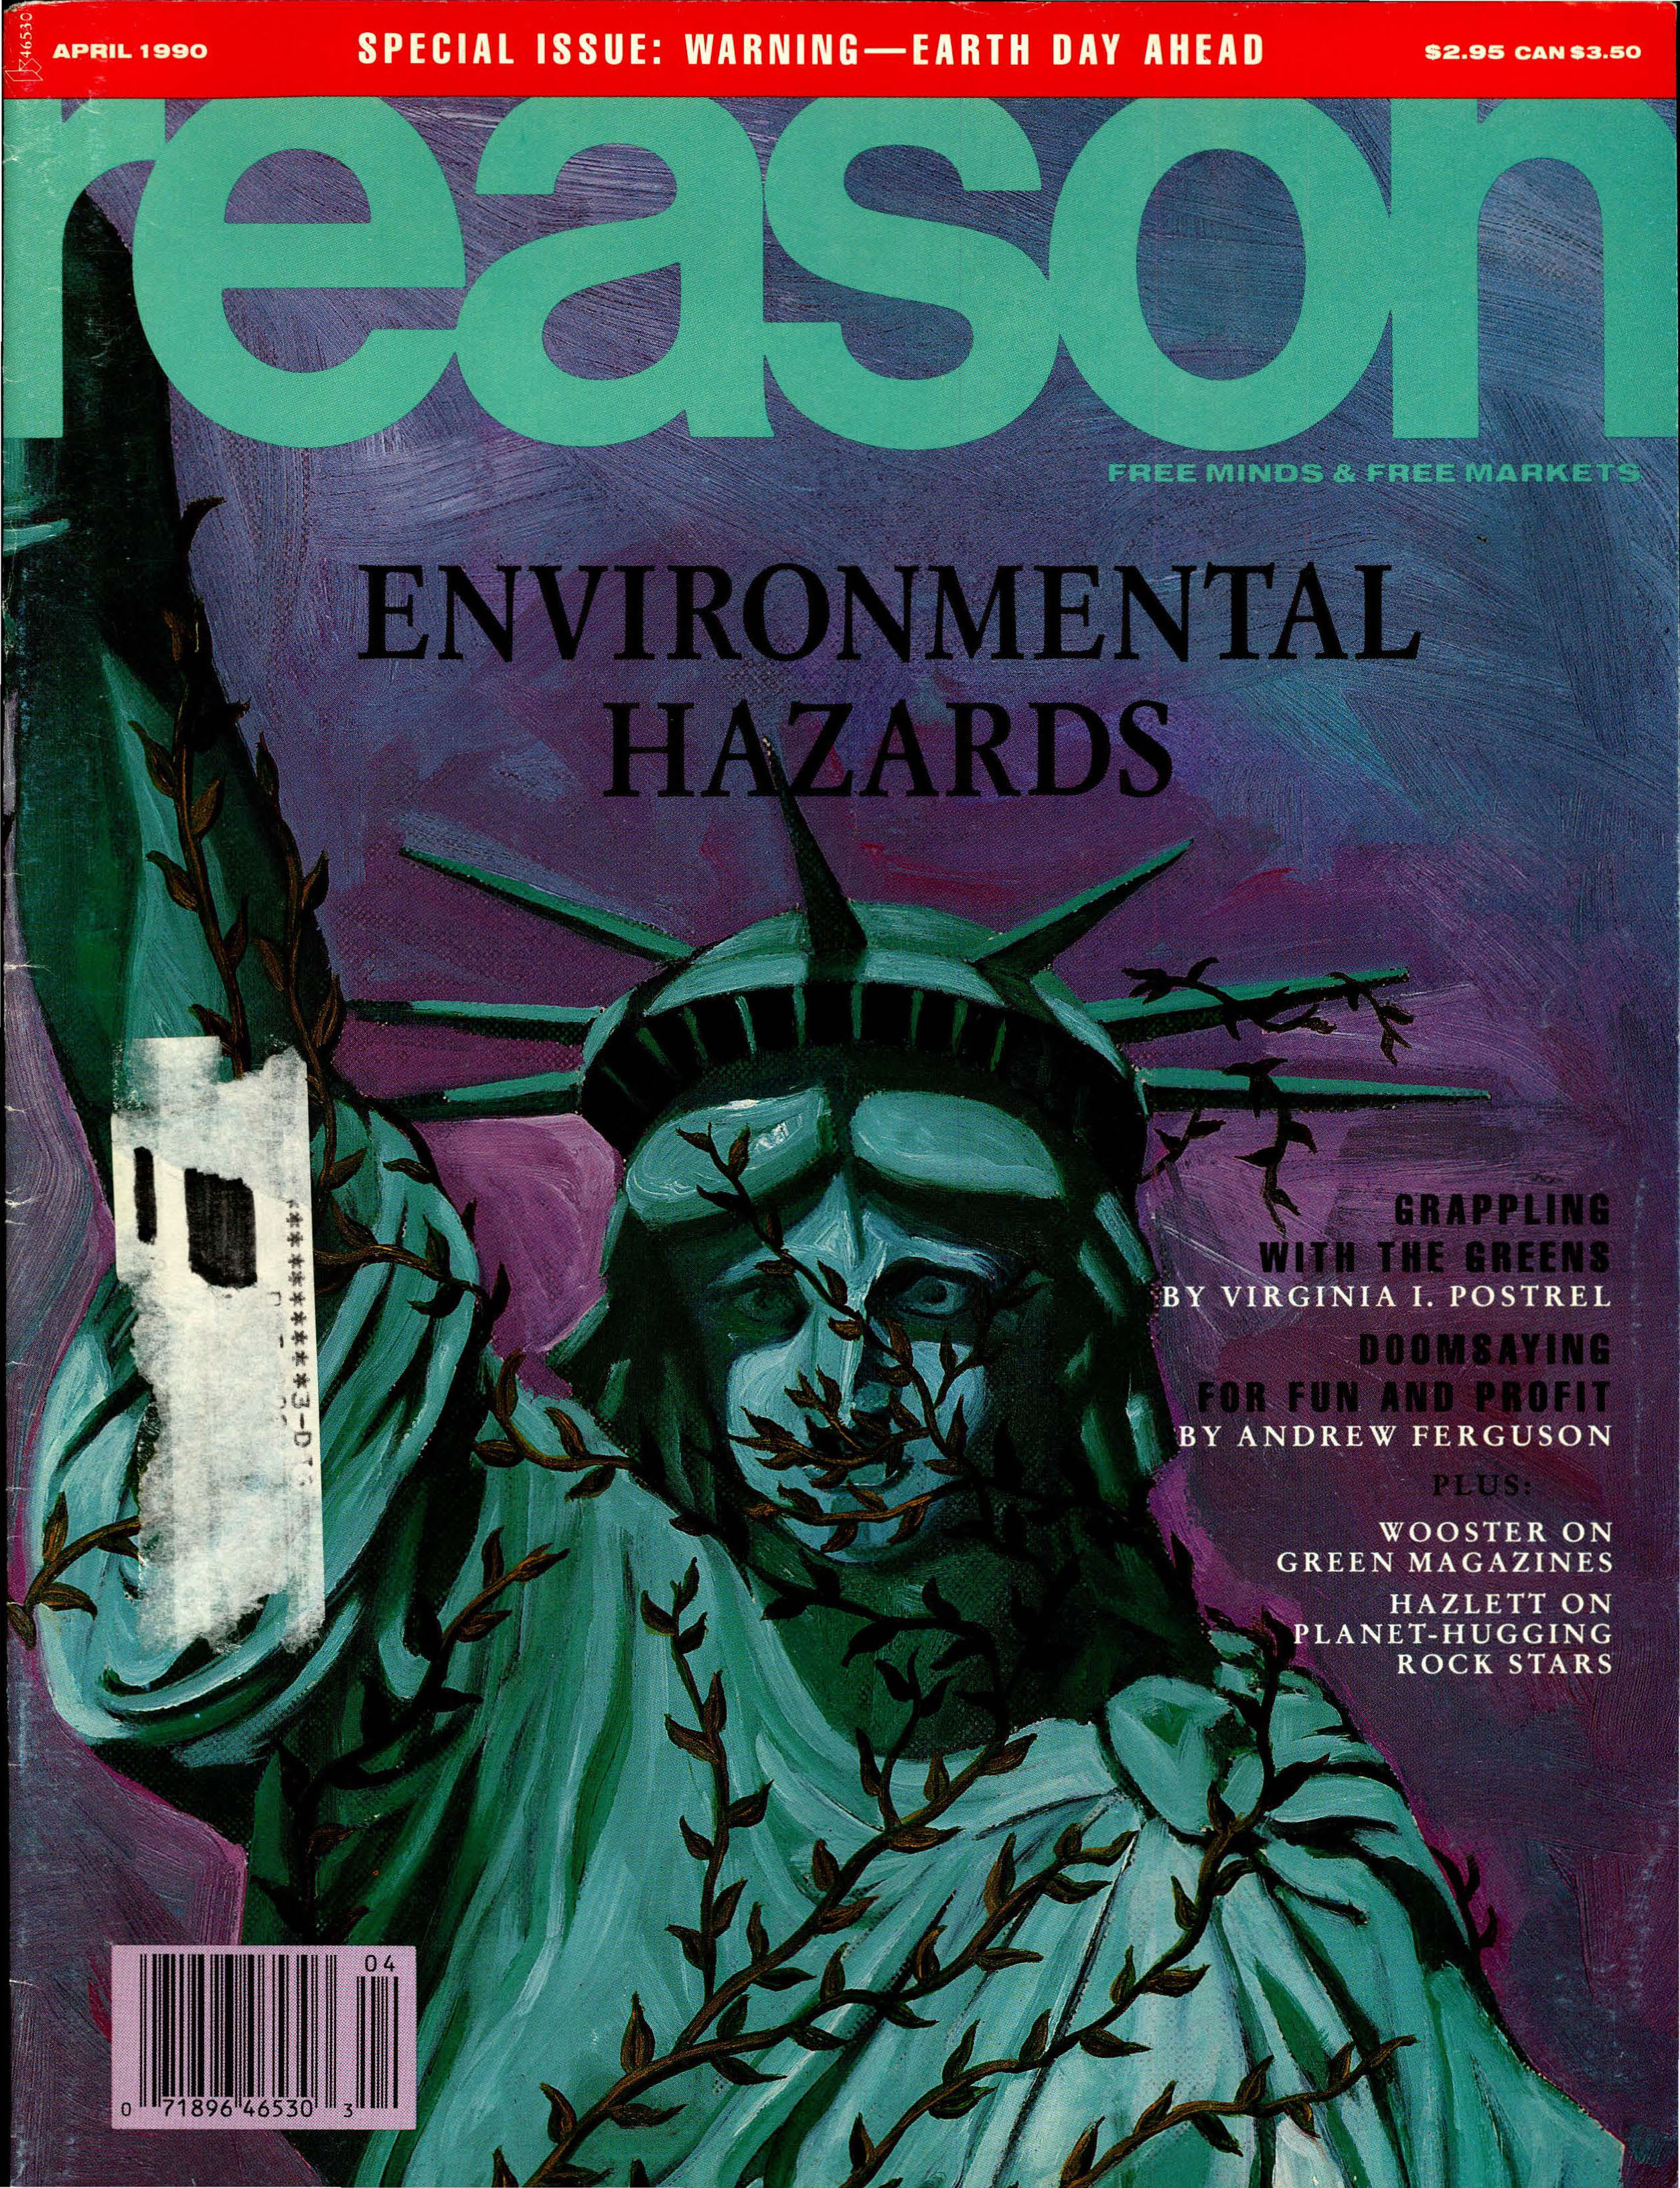 Reason Magazine, April 1990 cover image